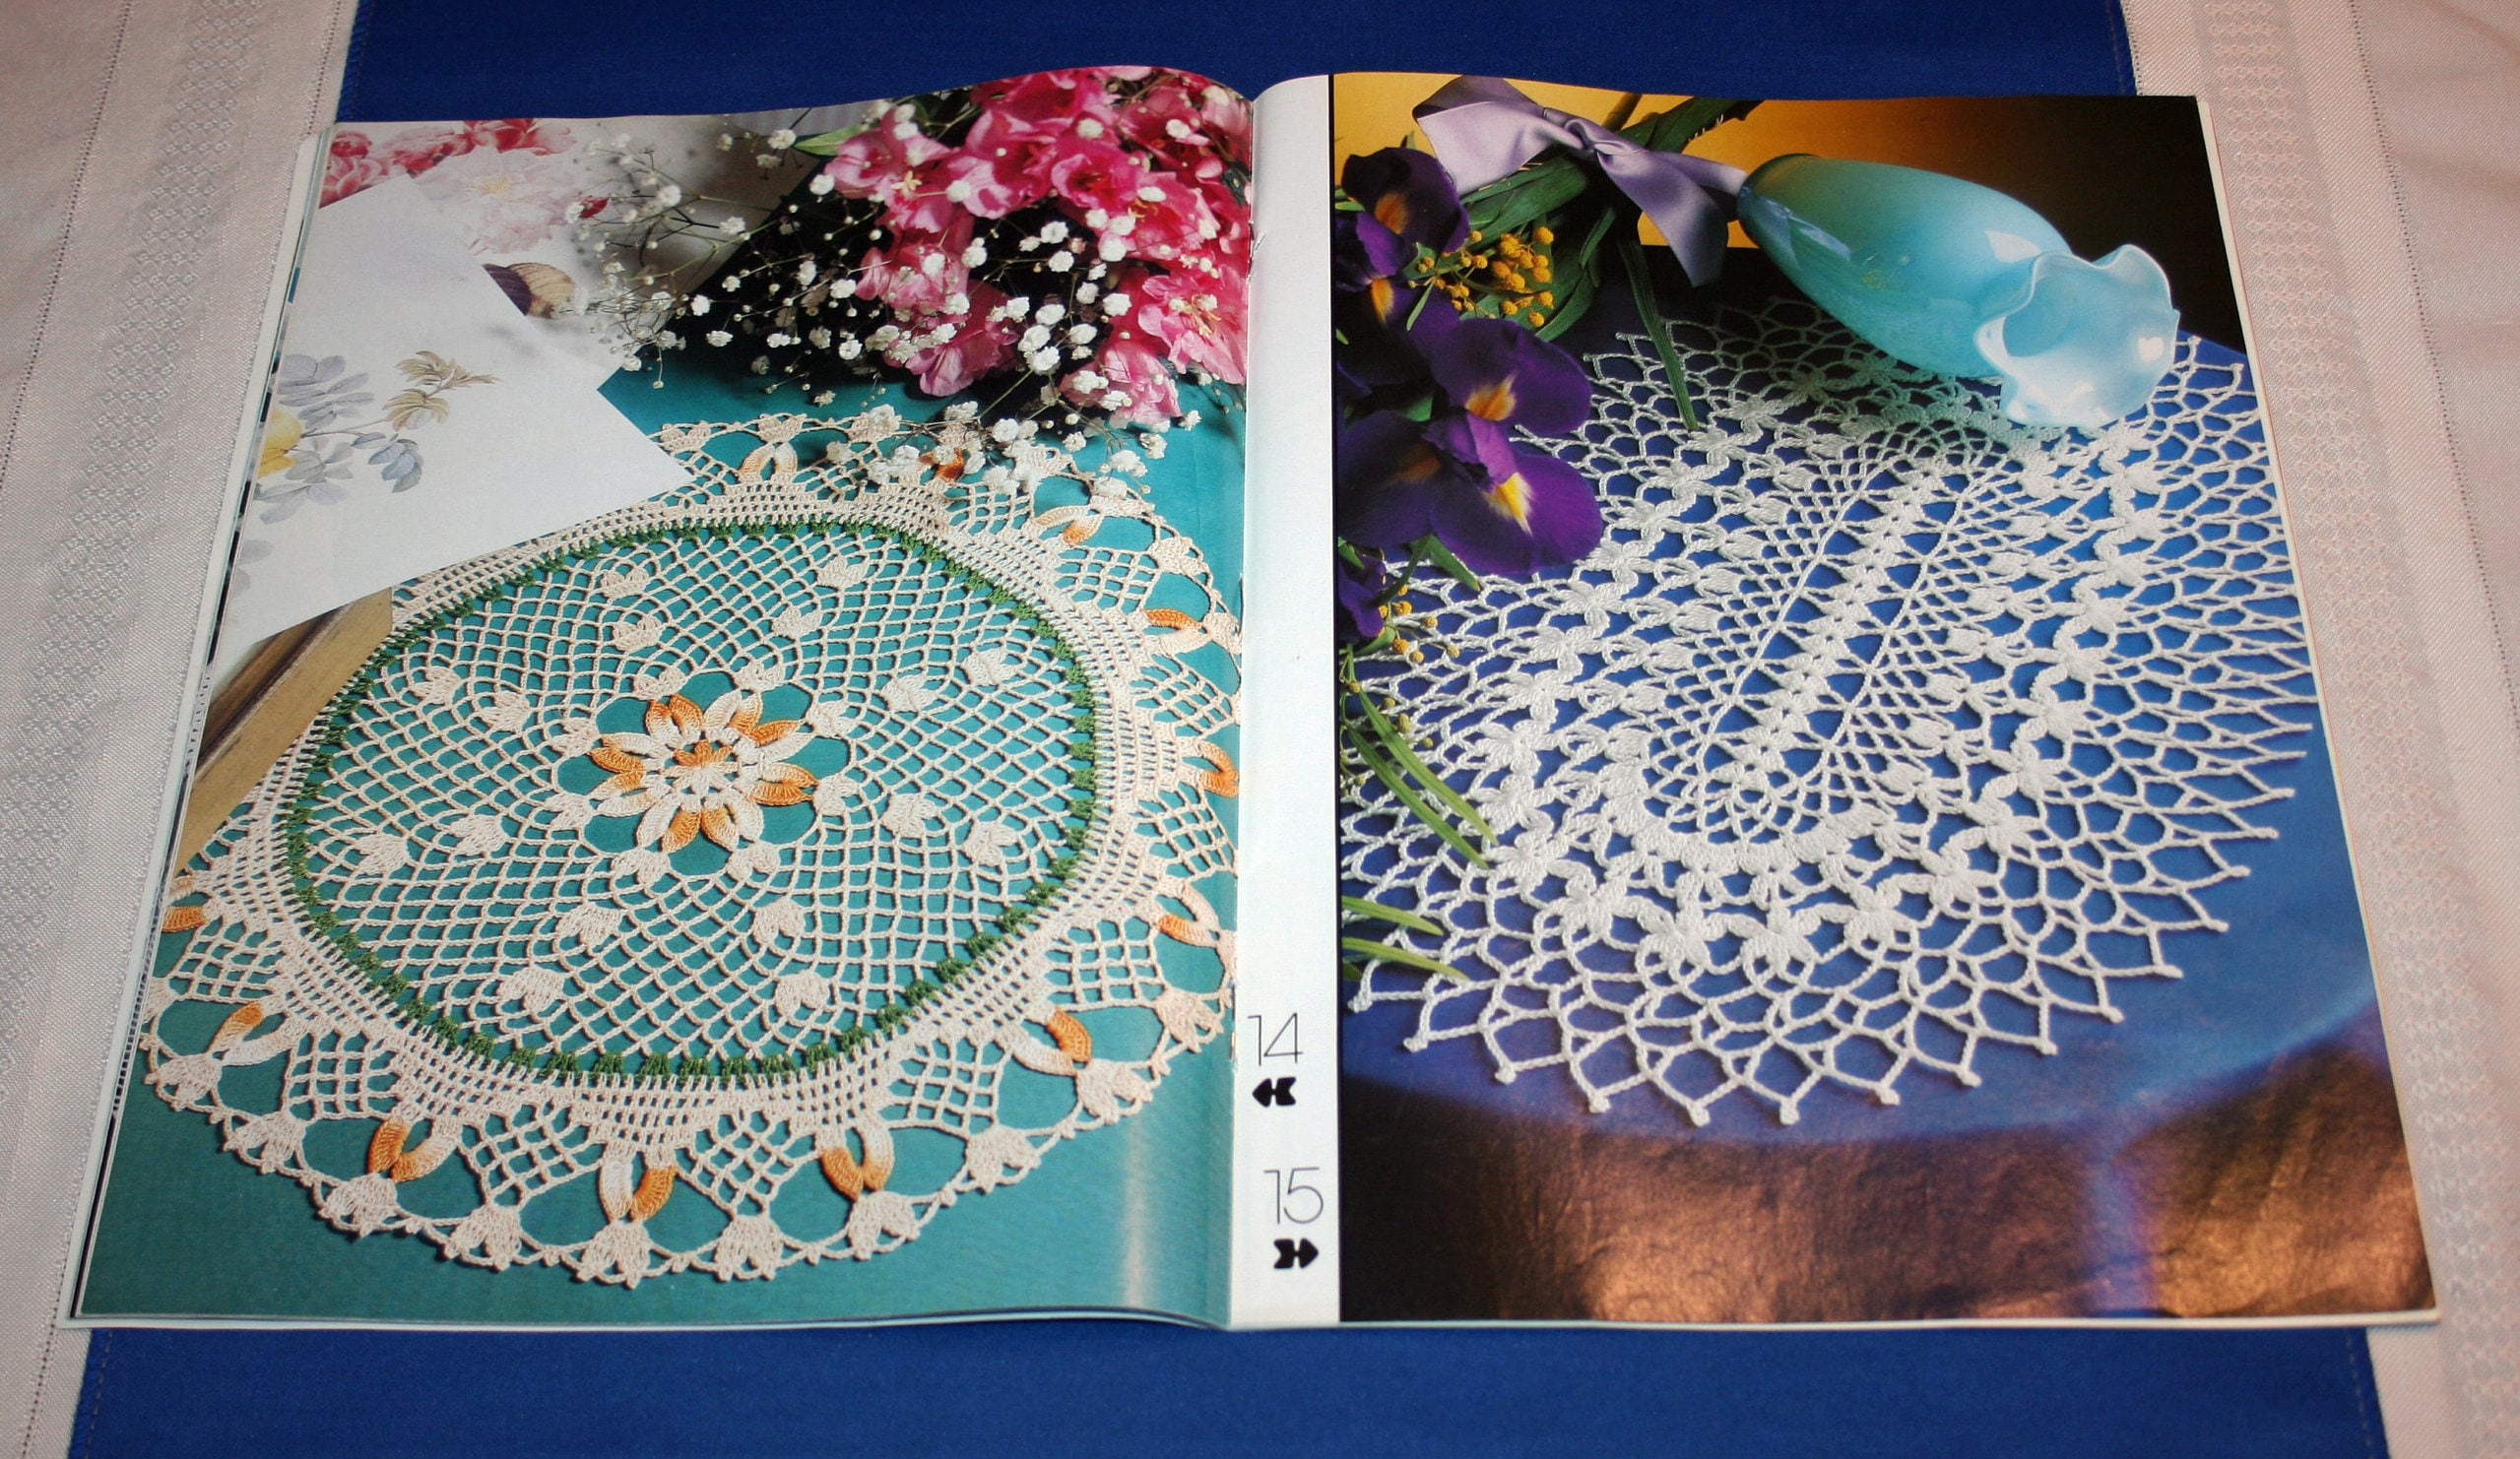 cd305f1b05a Vintage Decorative Crochet Pattern Magazine 27 Crocheting Patterns How to  Information Projects Tablecloths Bedspreads November 1994 No 42